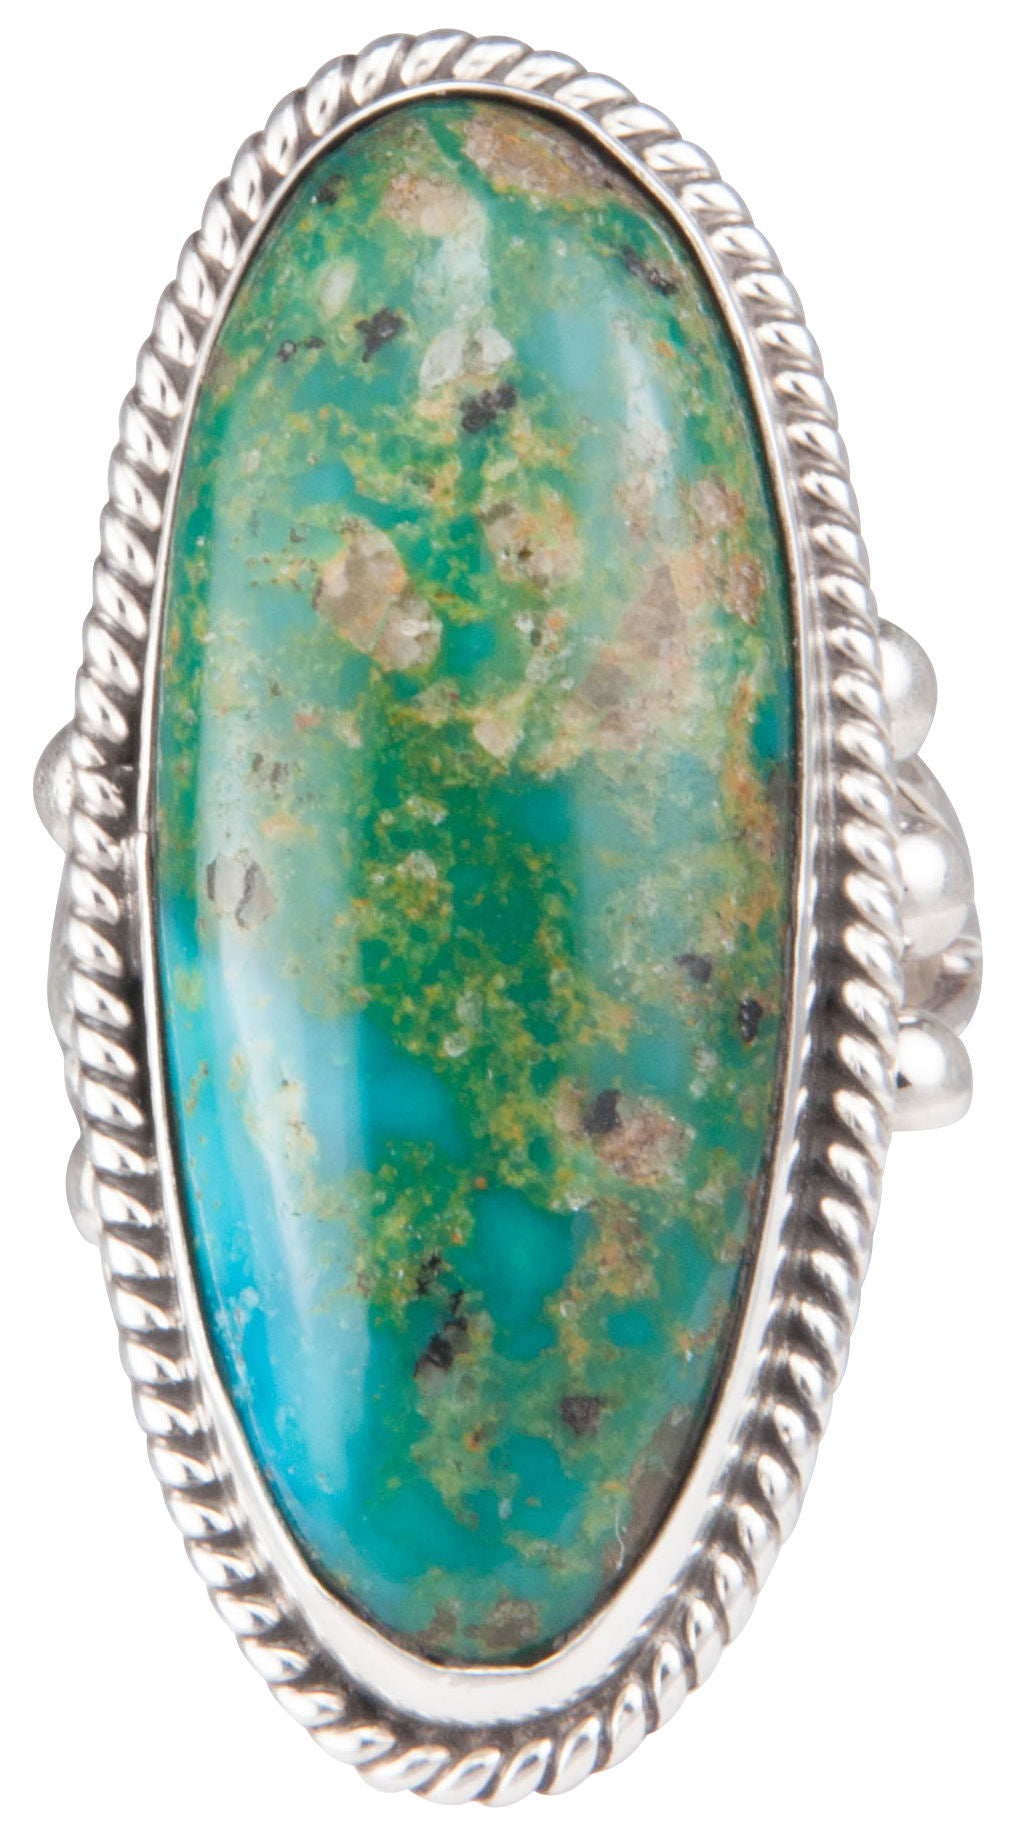 Navajo Native American Turquoise Mountain Ring Size 7 1/2 by Jim SKU229932